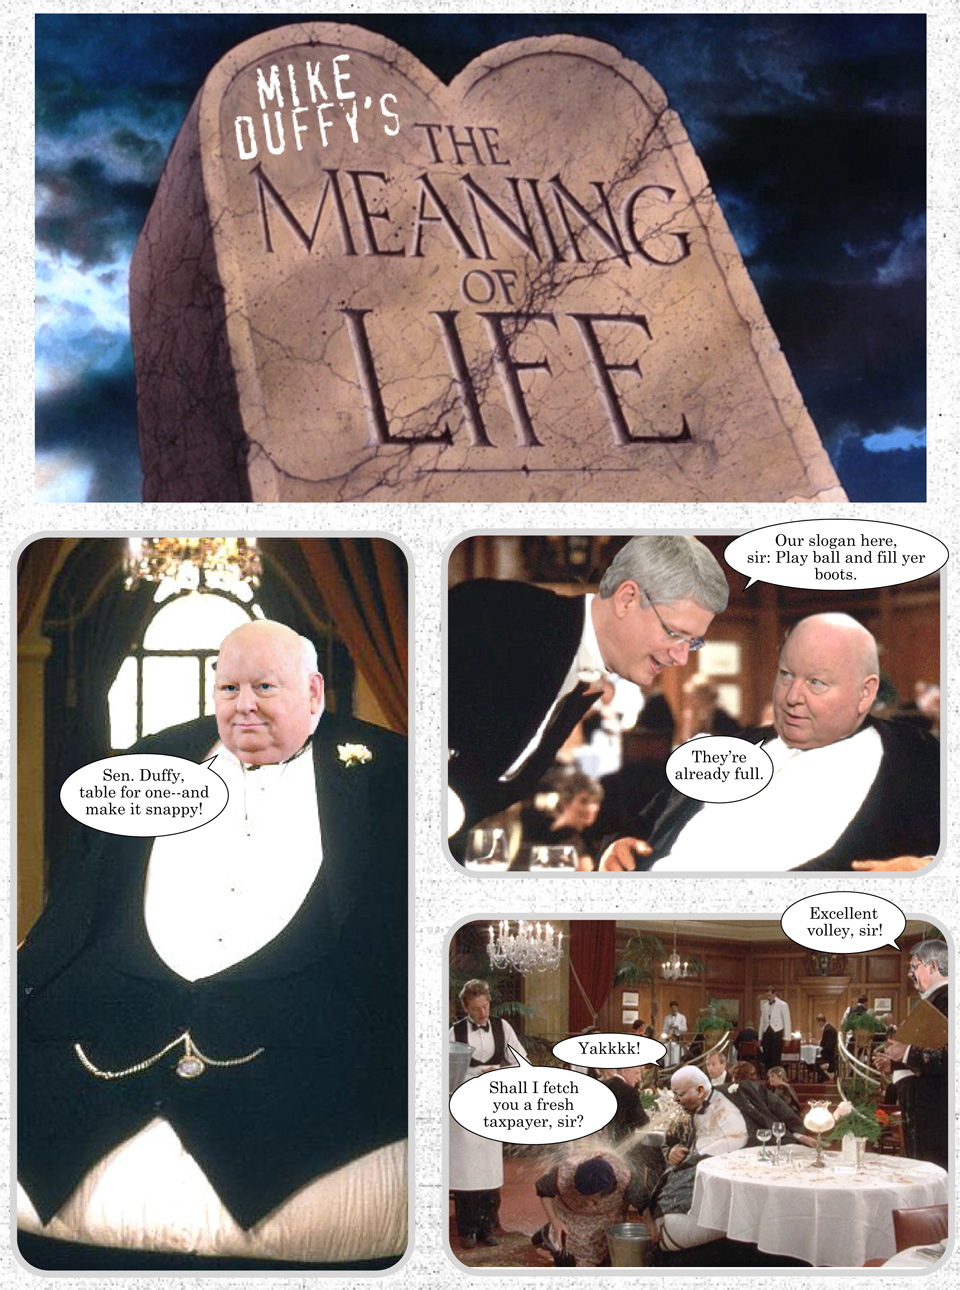 mike-duffy-meaning-of-life-1